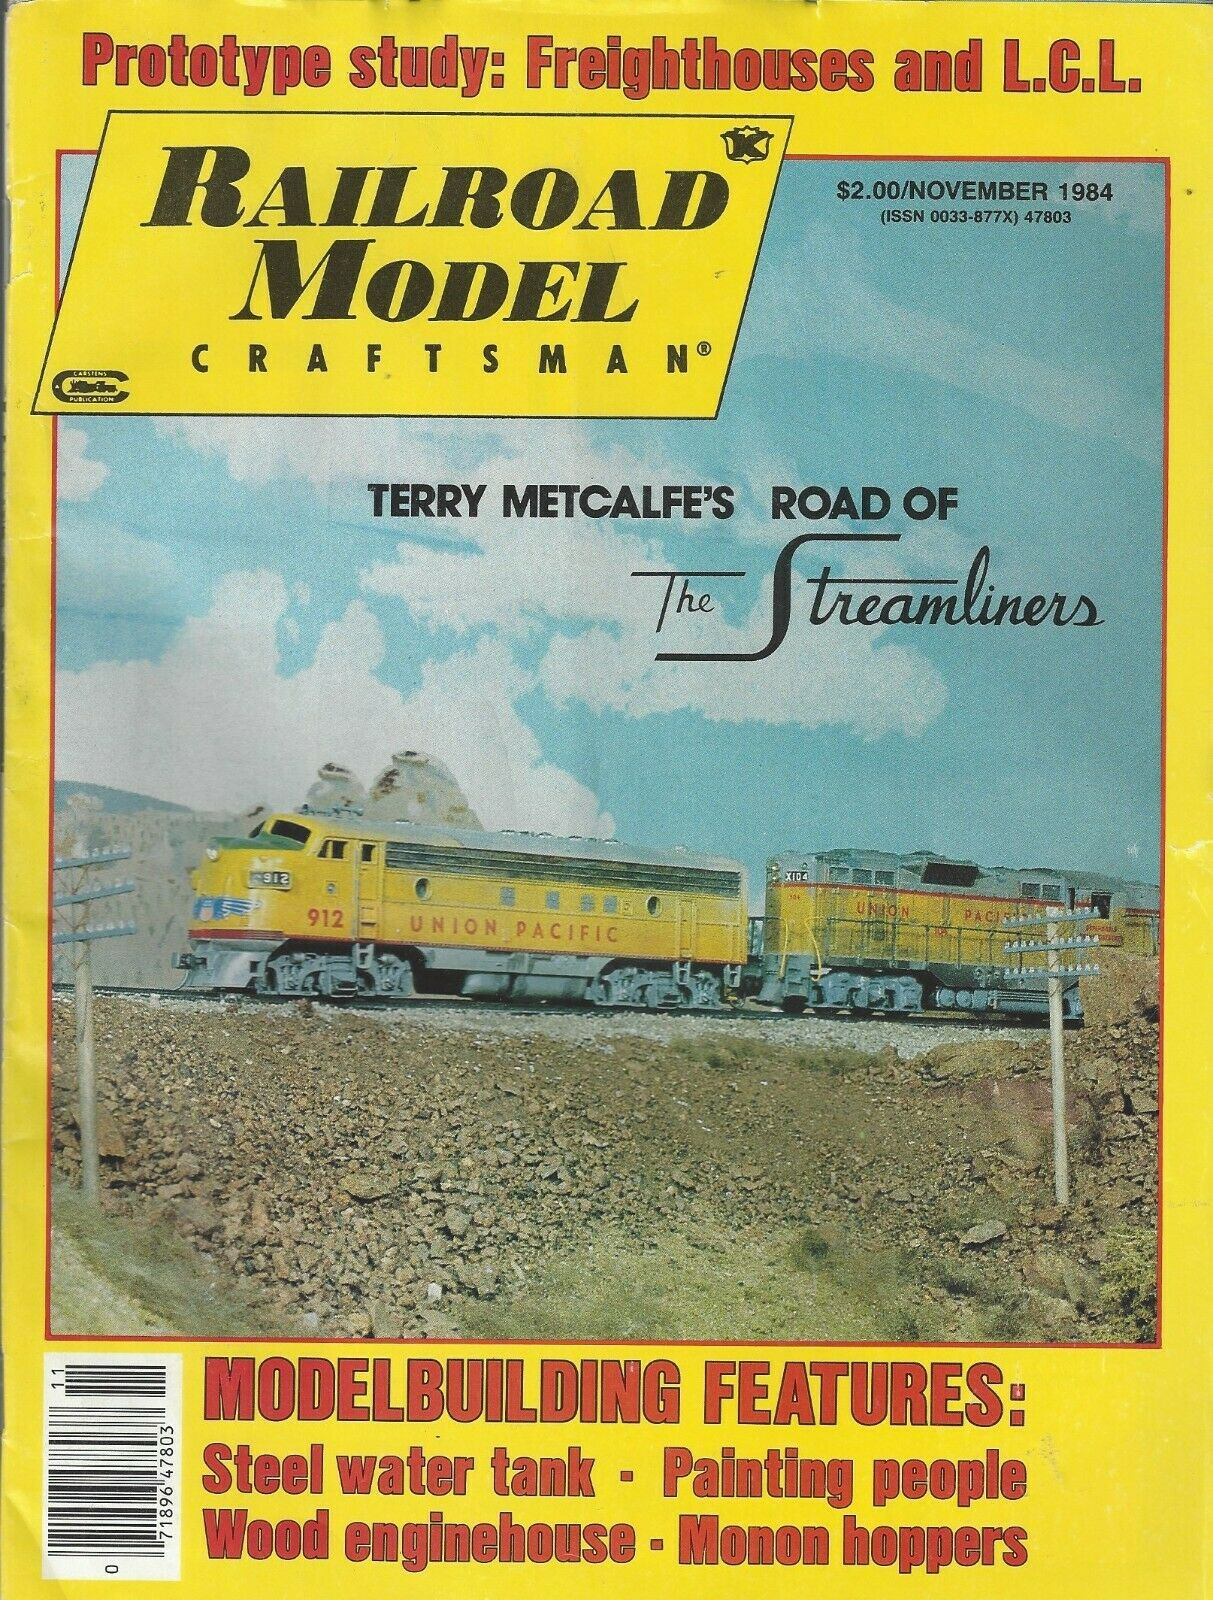 Railroad Model Craftsman_Nov 1984_Terry Metcalfe.jpg